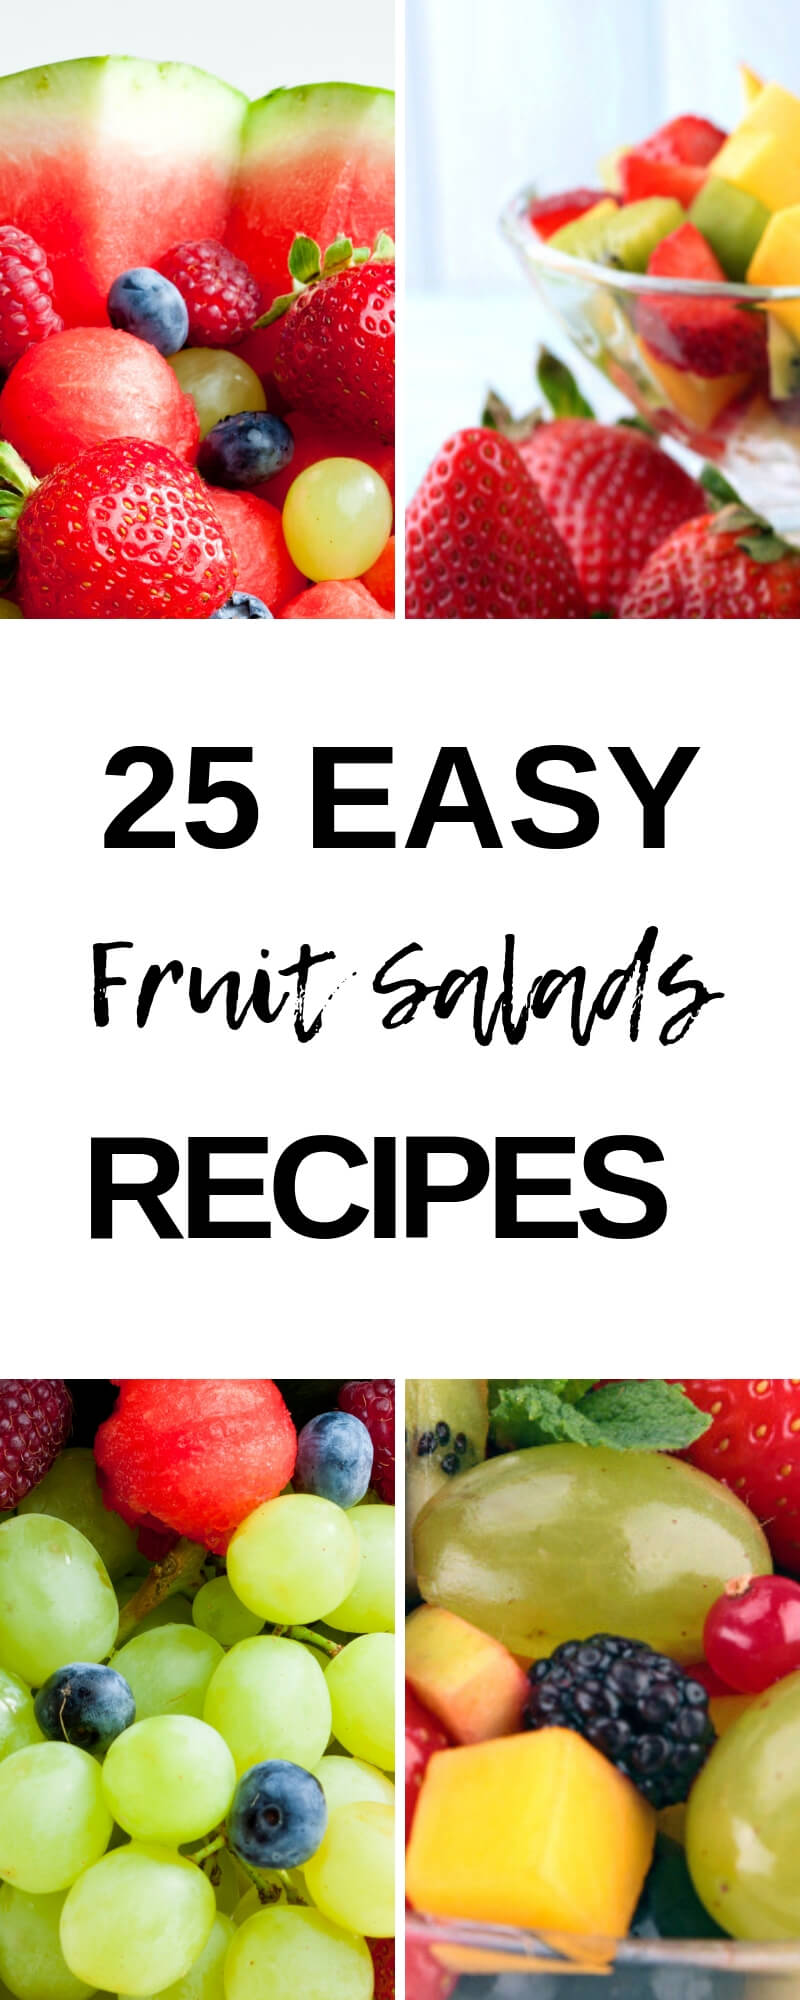 25 Easy Fruit Salad Recipes To Add To Your Menu Great For A Balanced Meal